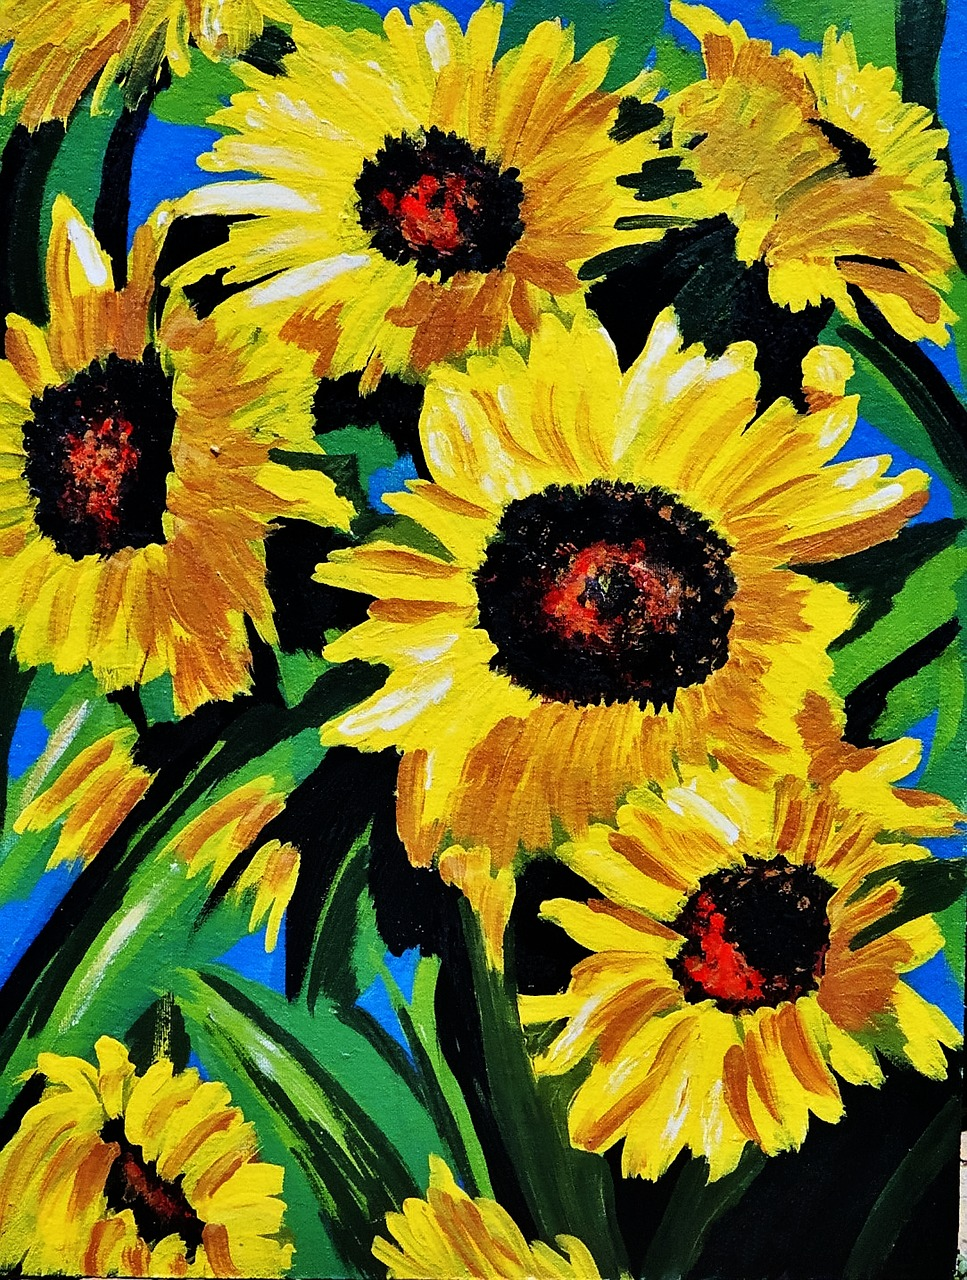 painted sunflowers acrylic paint canvas free photo